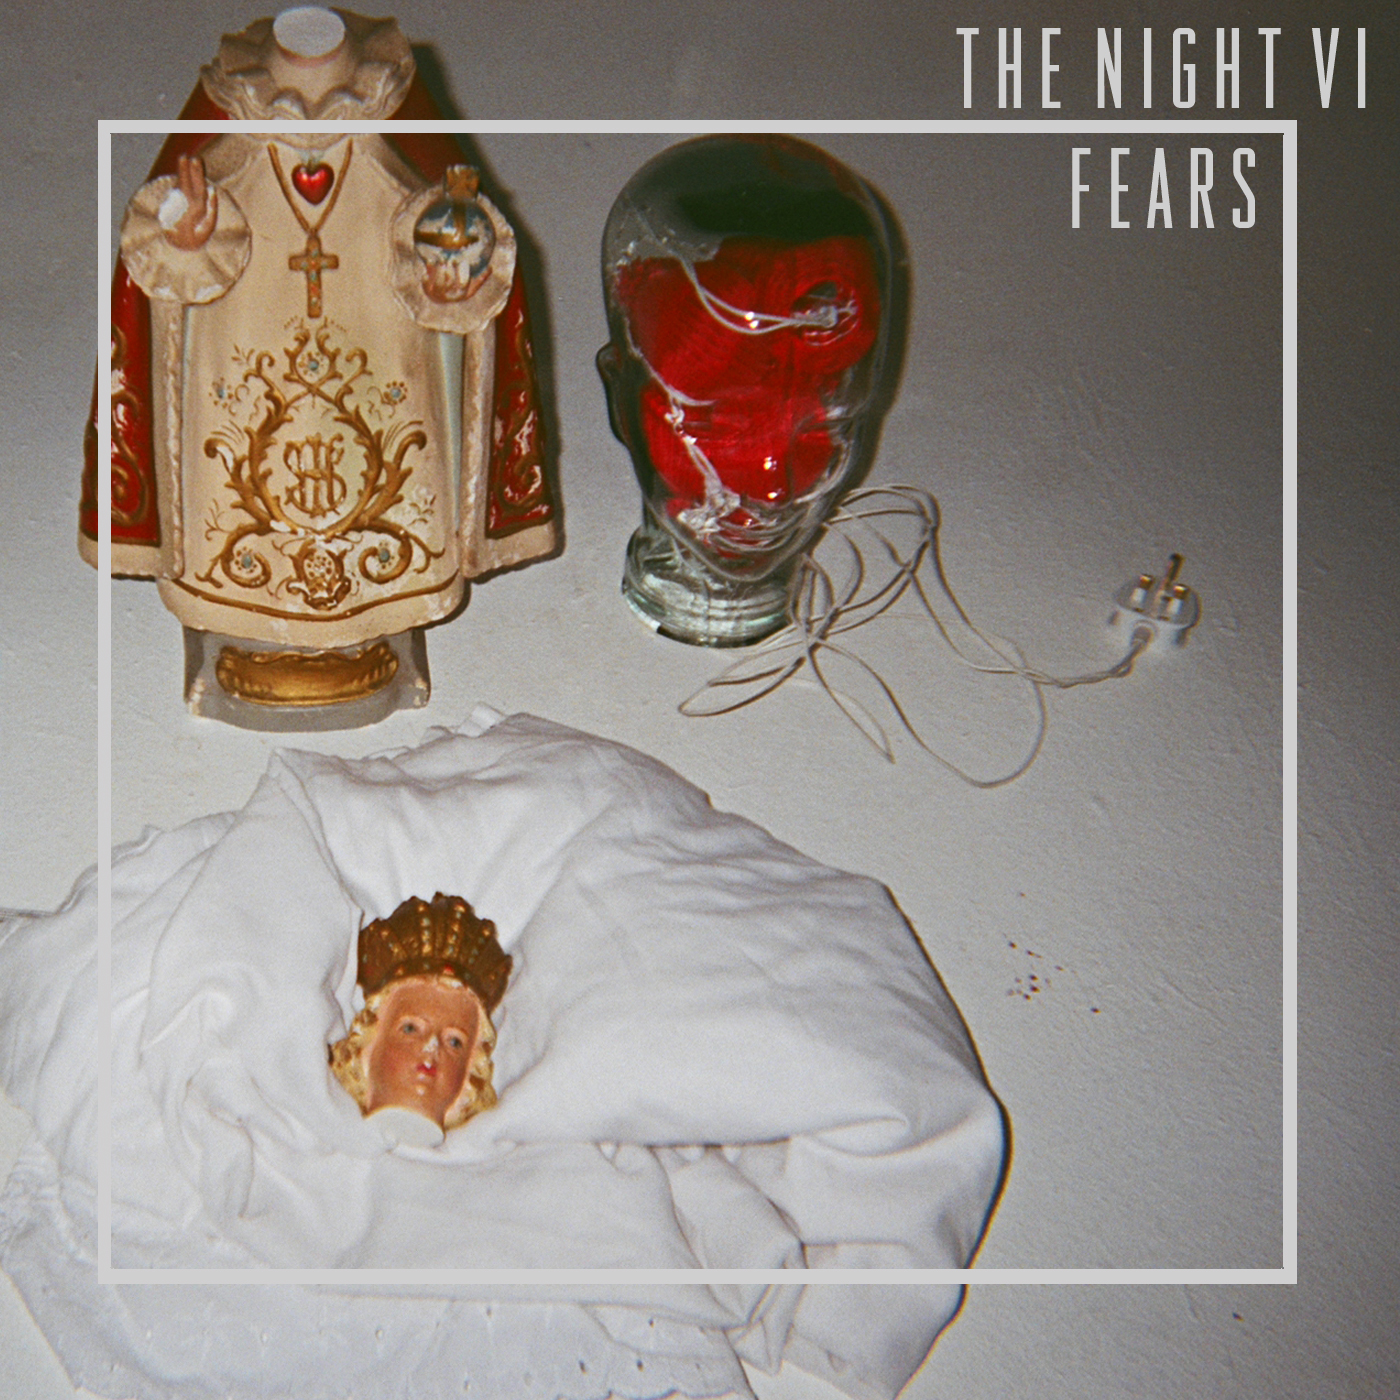 FEARS - THE NIGHT VI by Anna PEsquidous & THE NIGHT VI